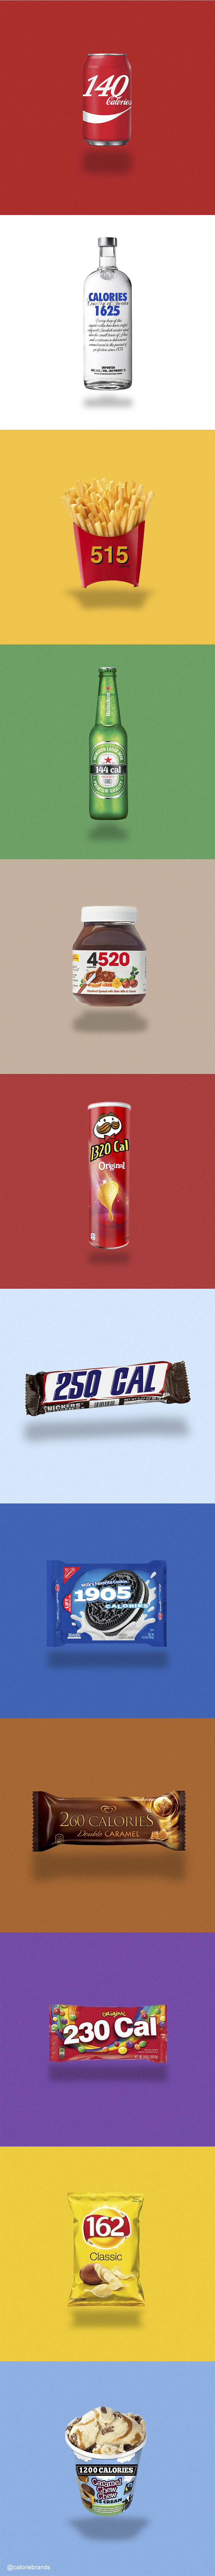 honest-product-logos-junk-food-calorie-count-caloriebrands